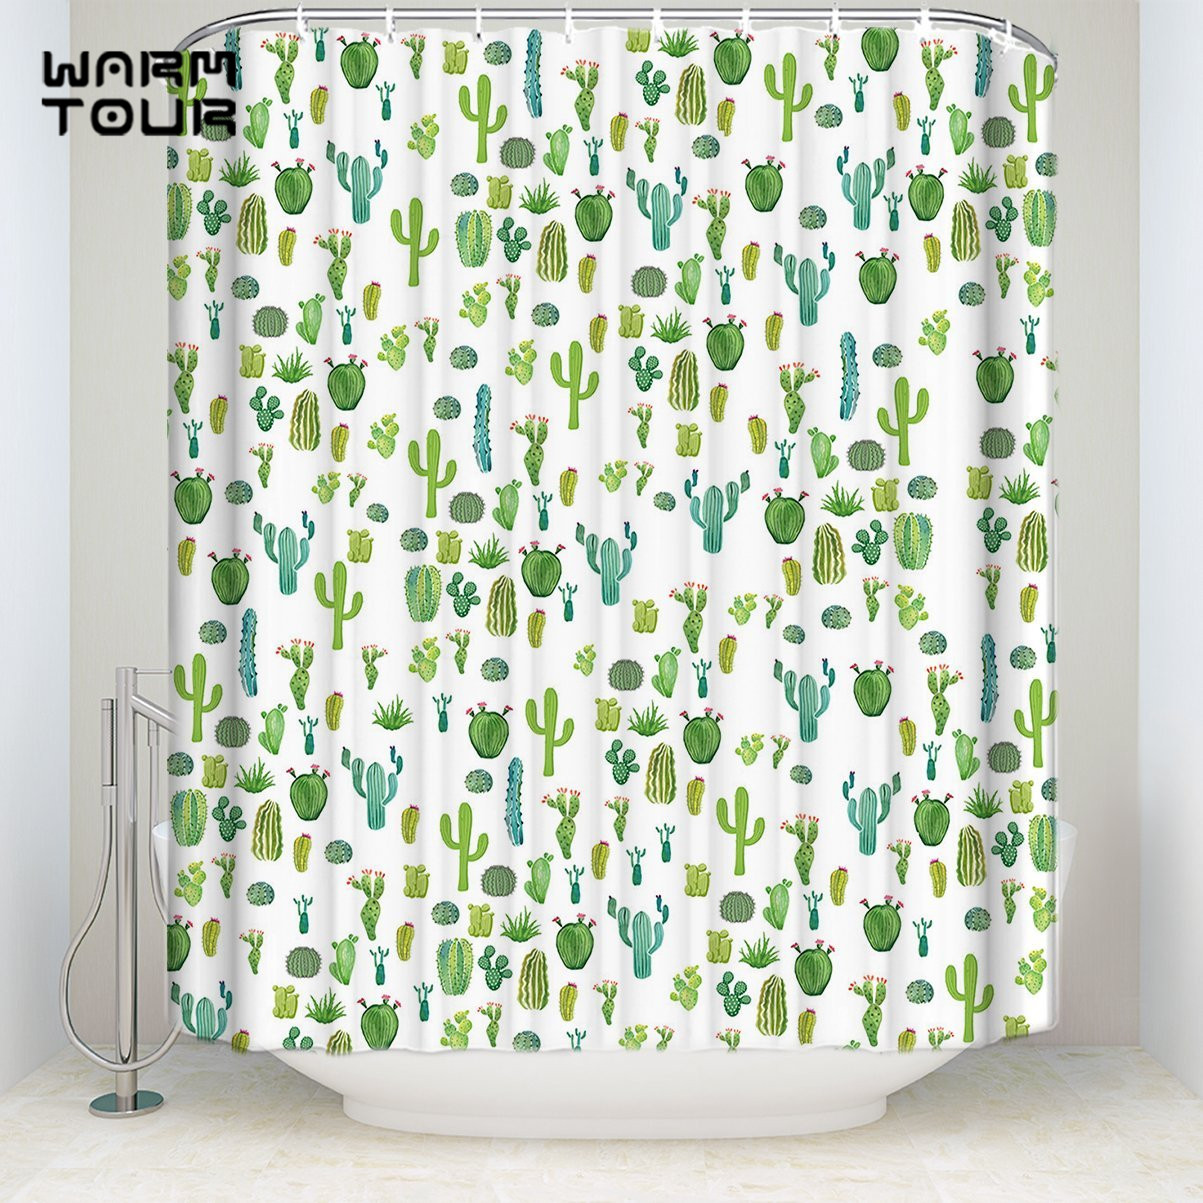 extra long fabric bath shower curtains 36 x 78 inches funny tropical cactus mildew resistant bathroom decor sets with hooks